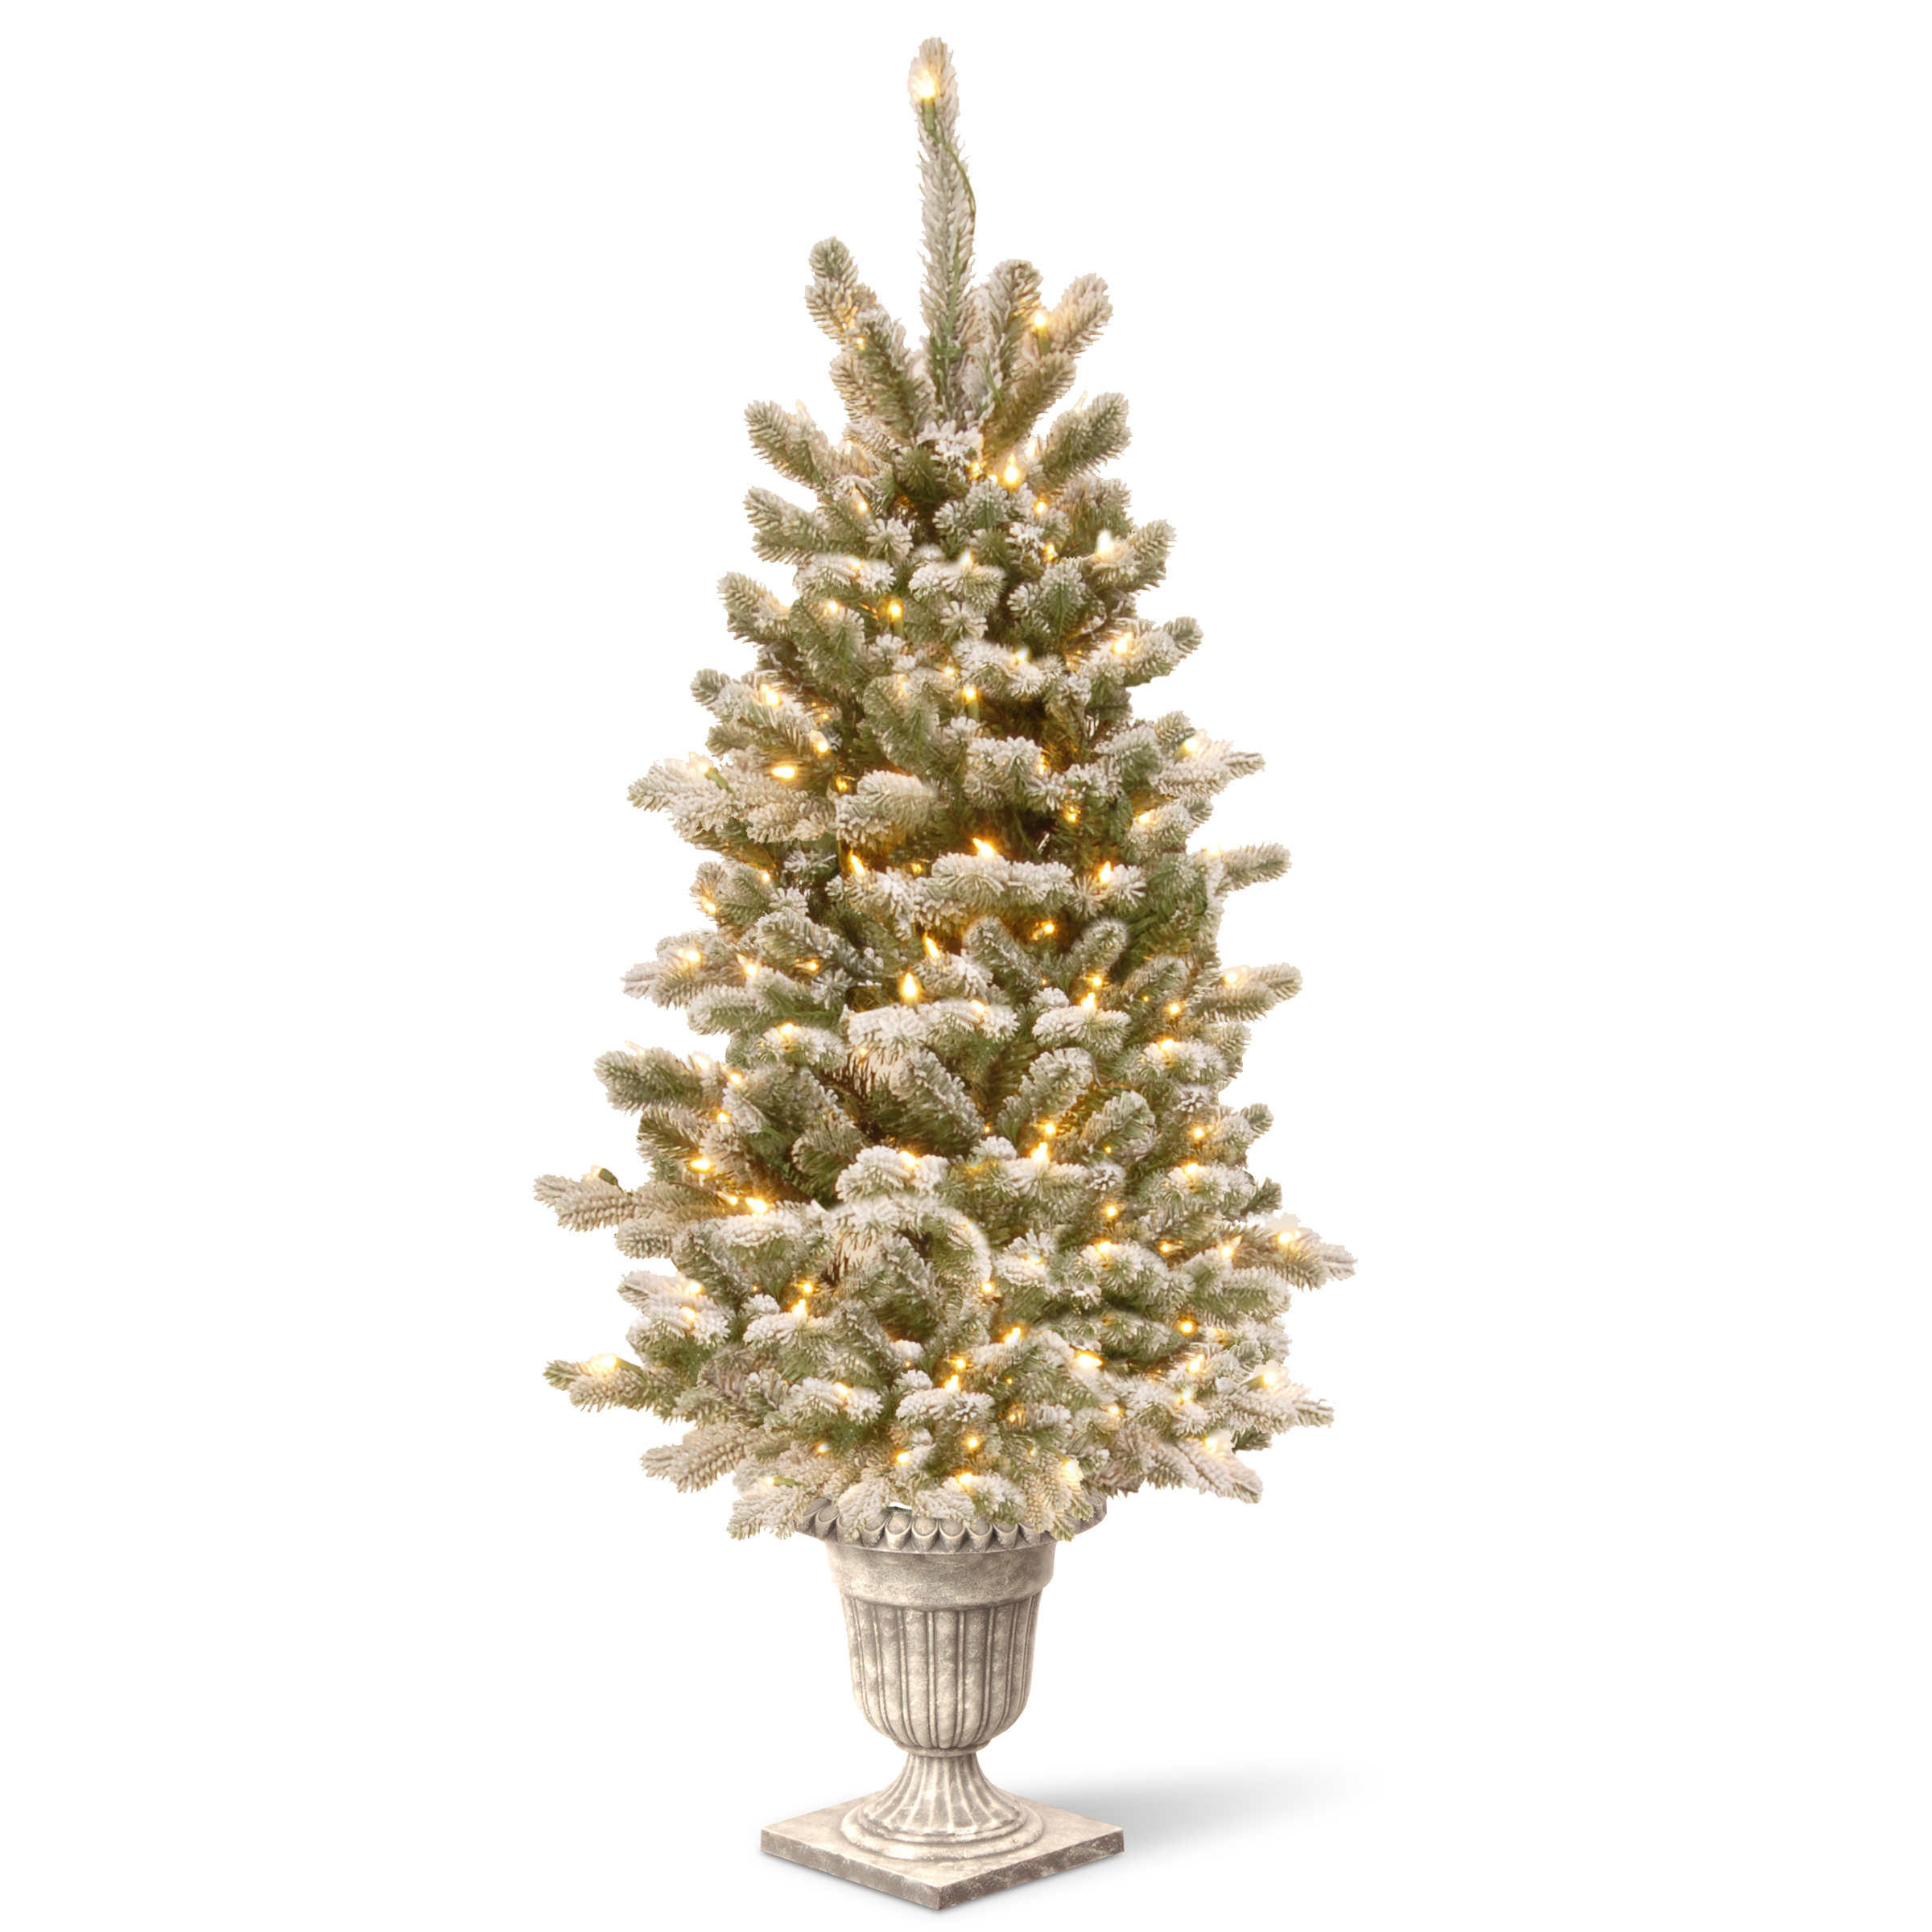 National Tree Company National Tree 4 ft Snowy Sheffield Spruce Entrance Tree with Clear Lights